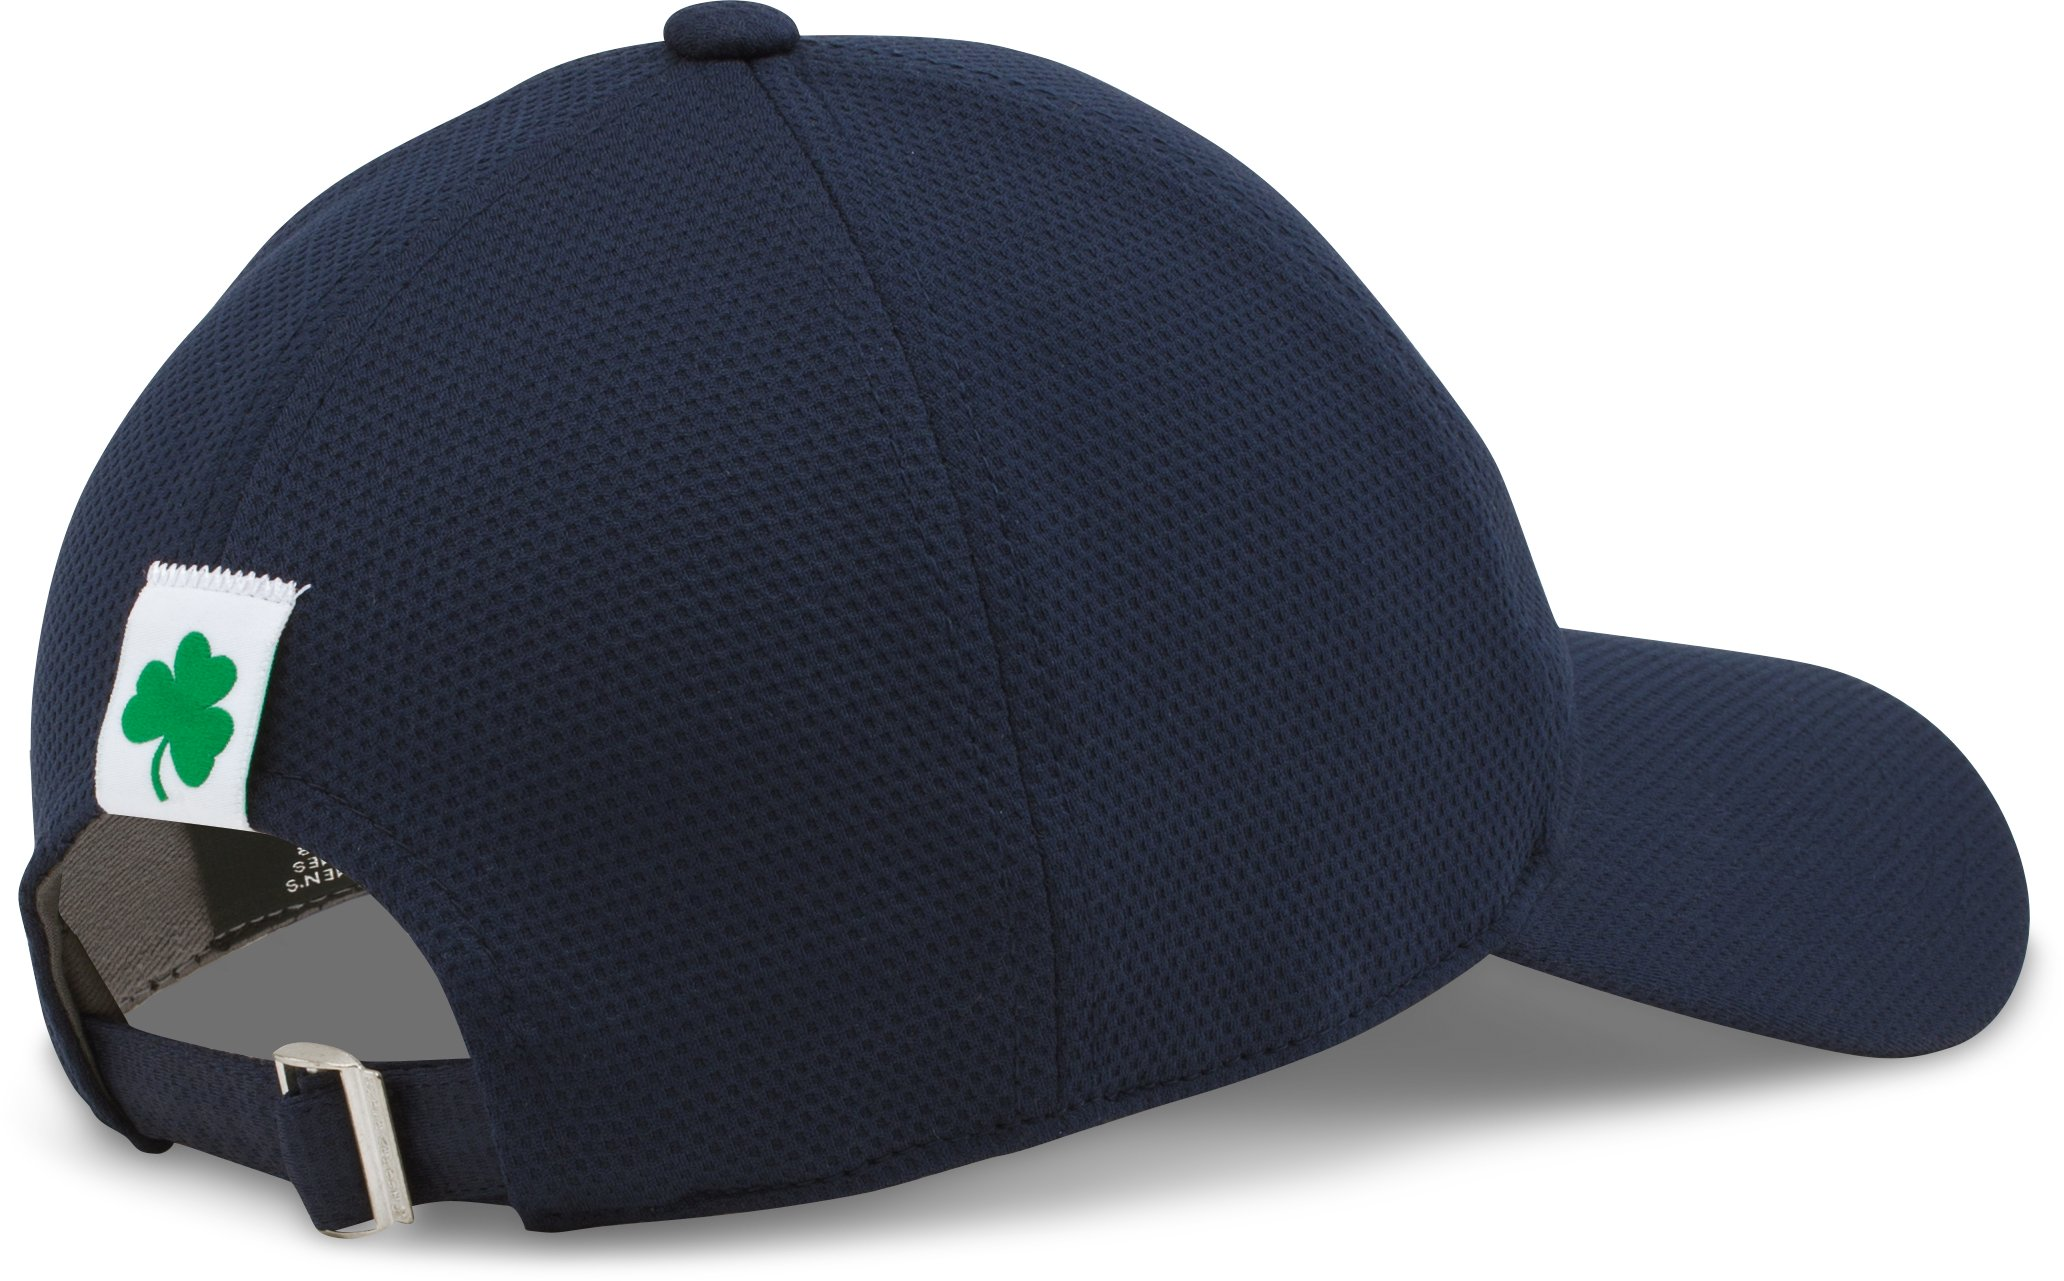 Women's Notre Dame Blitzing Adjustable Cap, Midnight Navy, undefined